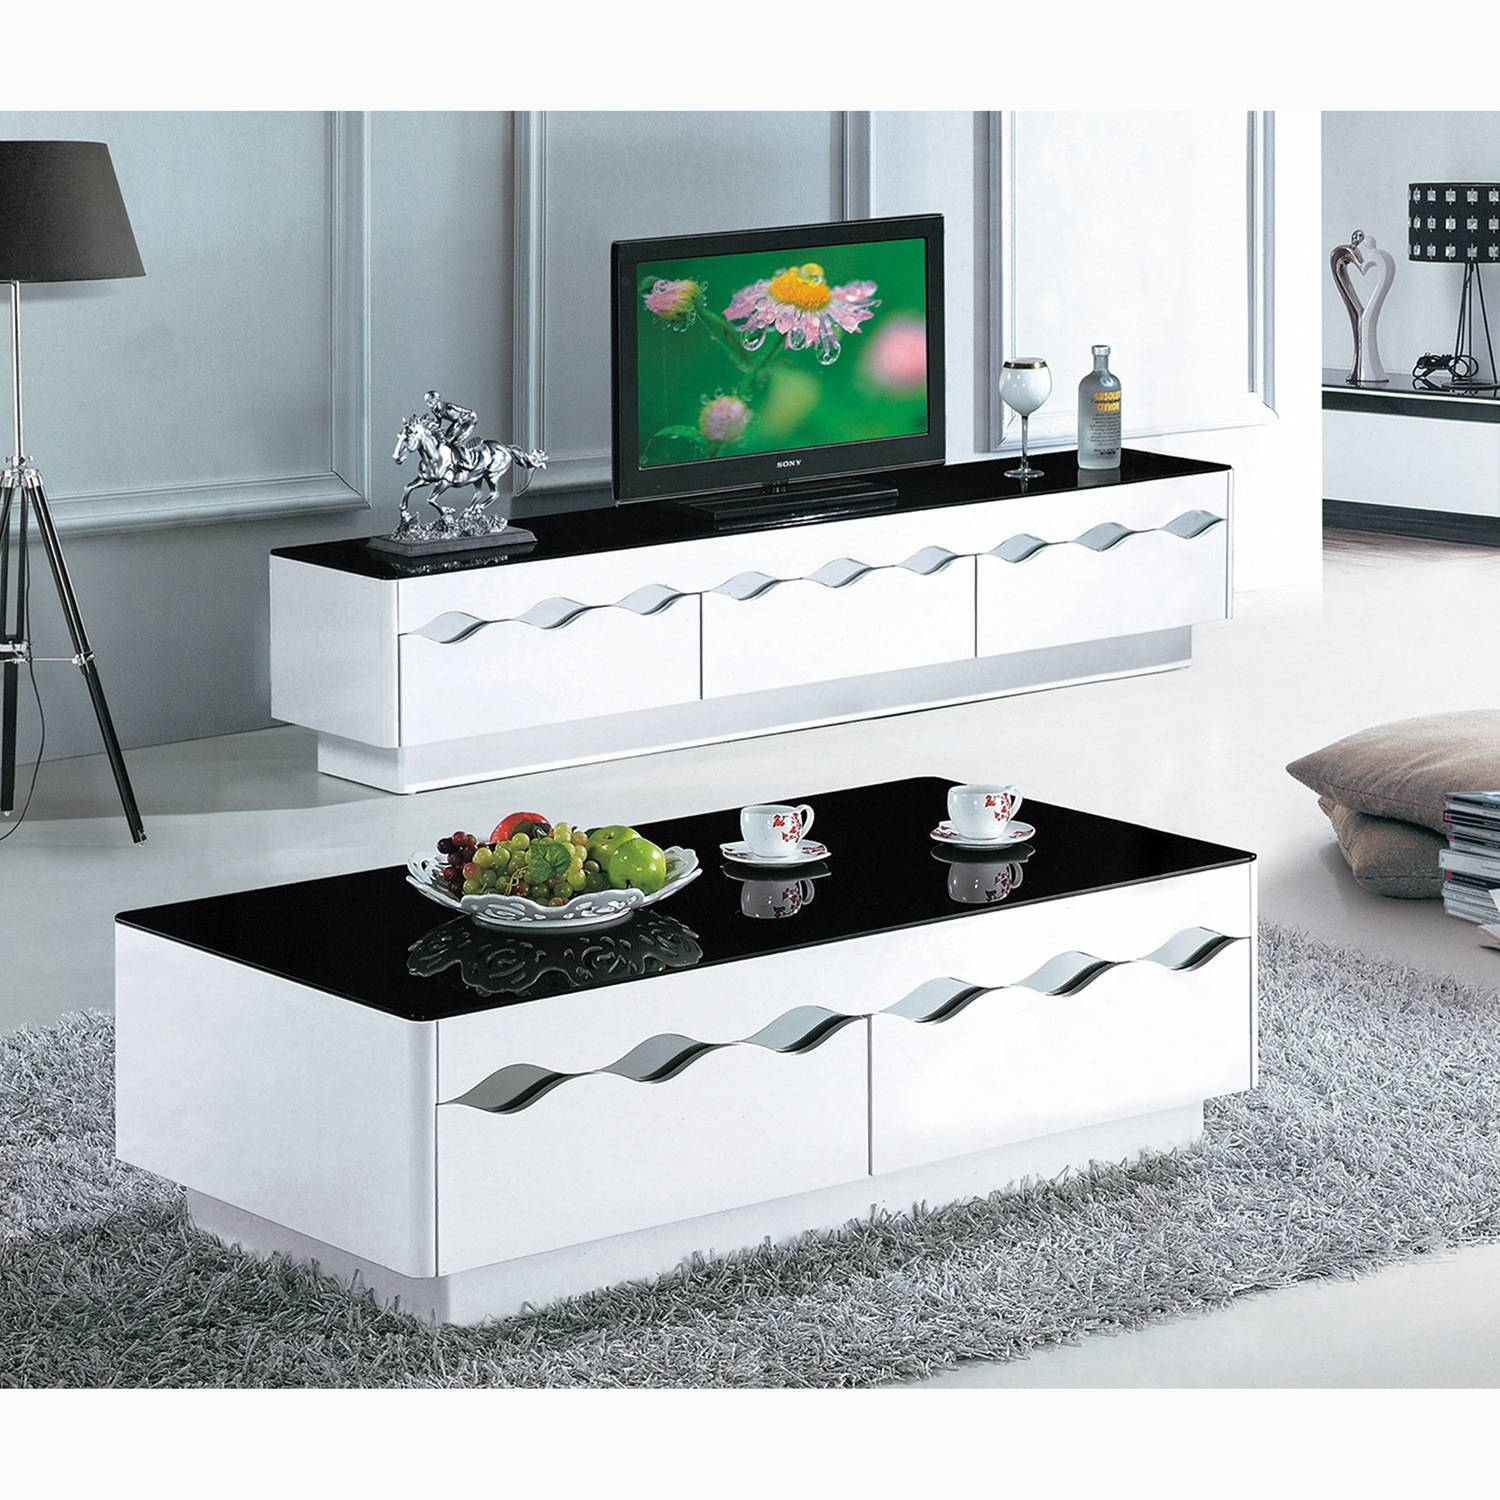 Black And White Paint Glass Coffee Table Living Room Furniture Tv throughout Tv Cabinets and Coffee Table Sets (Image 1 of 15)